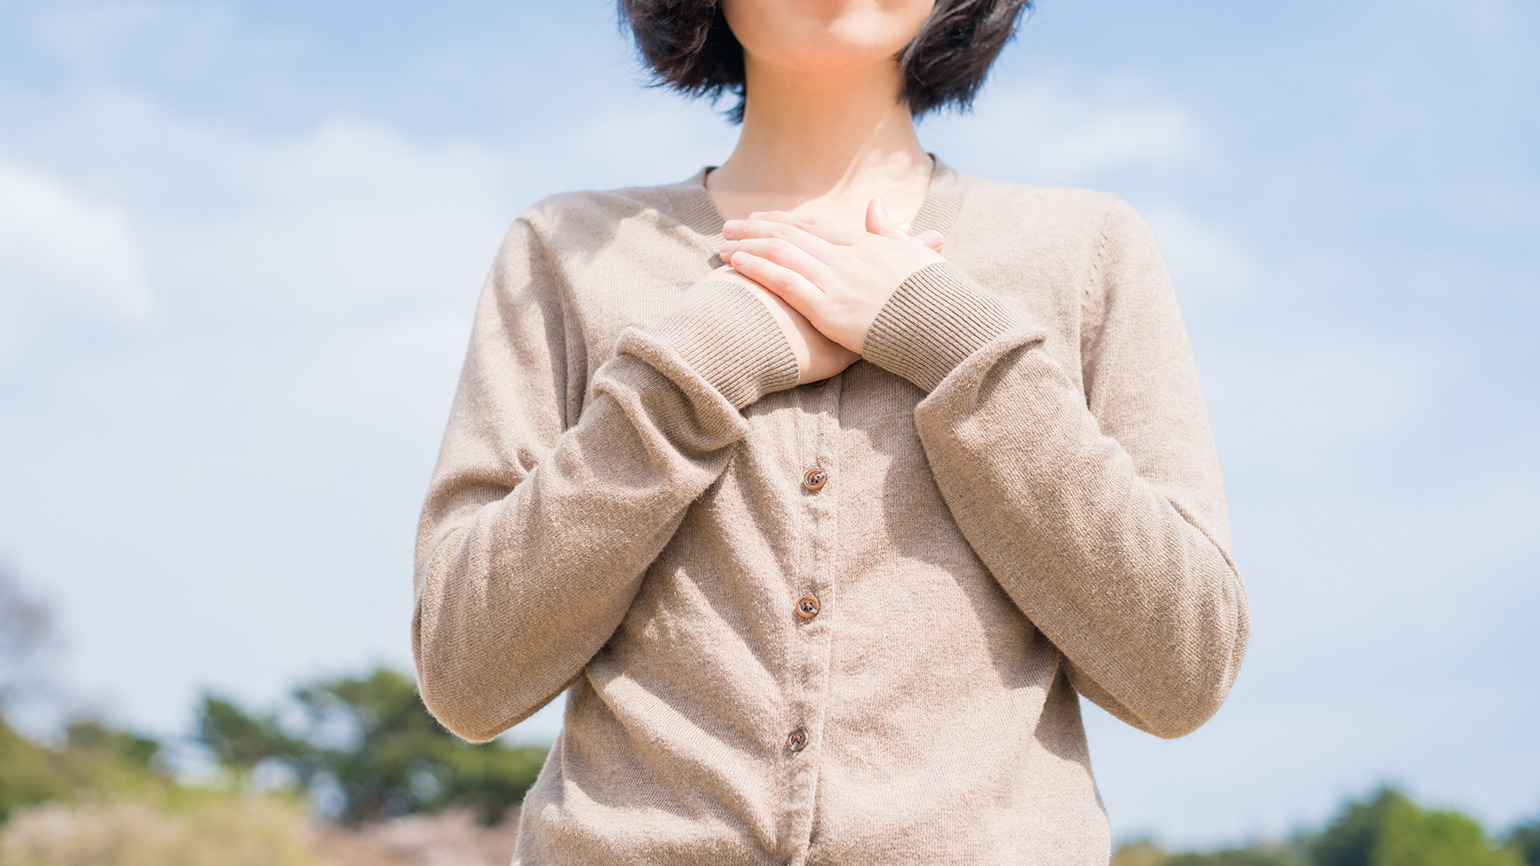 A woman clasps her hands to her heart in gratitude